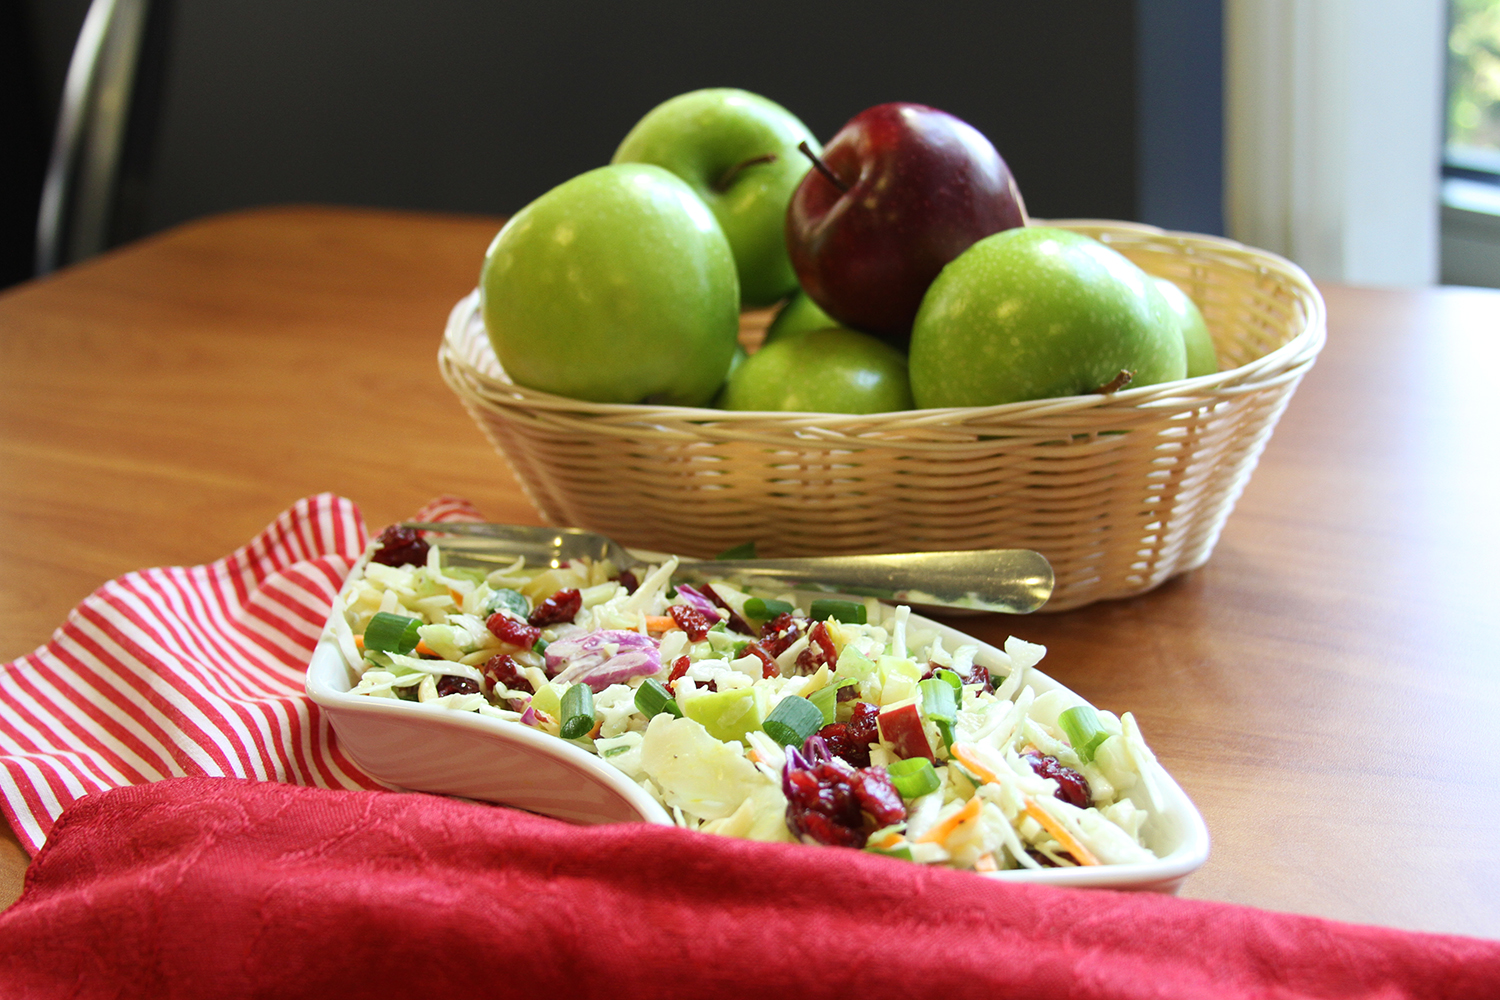 Harvest of the Month - Taste the featured recipe on Oct. 17 at Black River Memorial Hospital, More info here